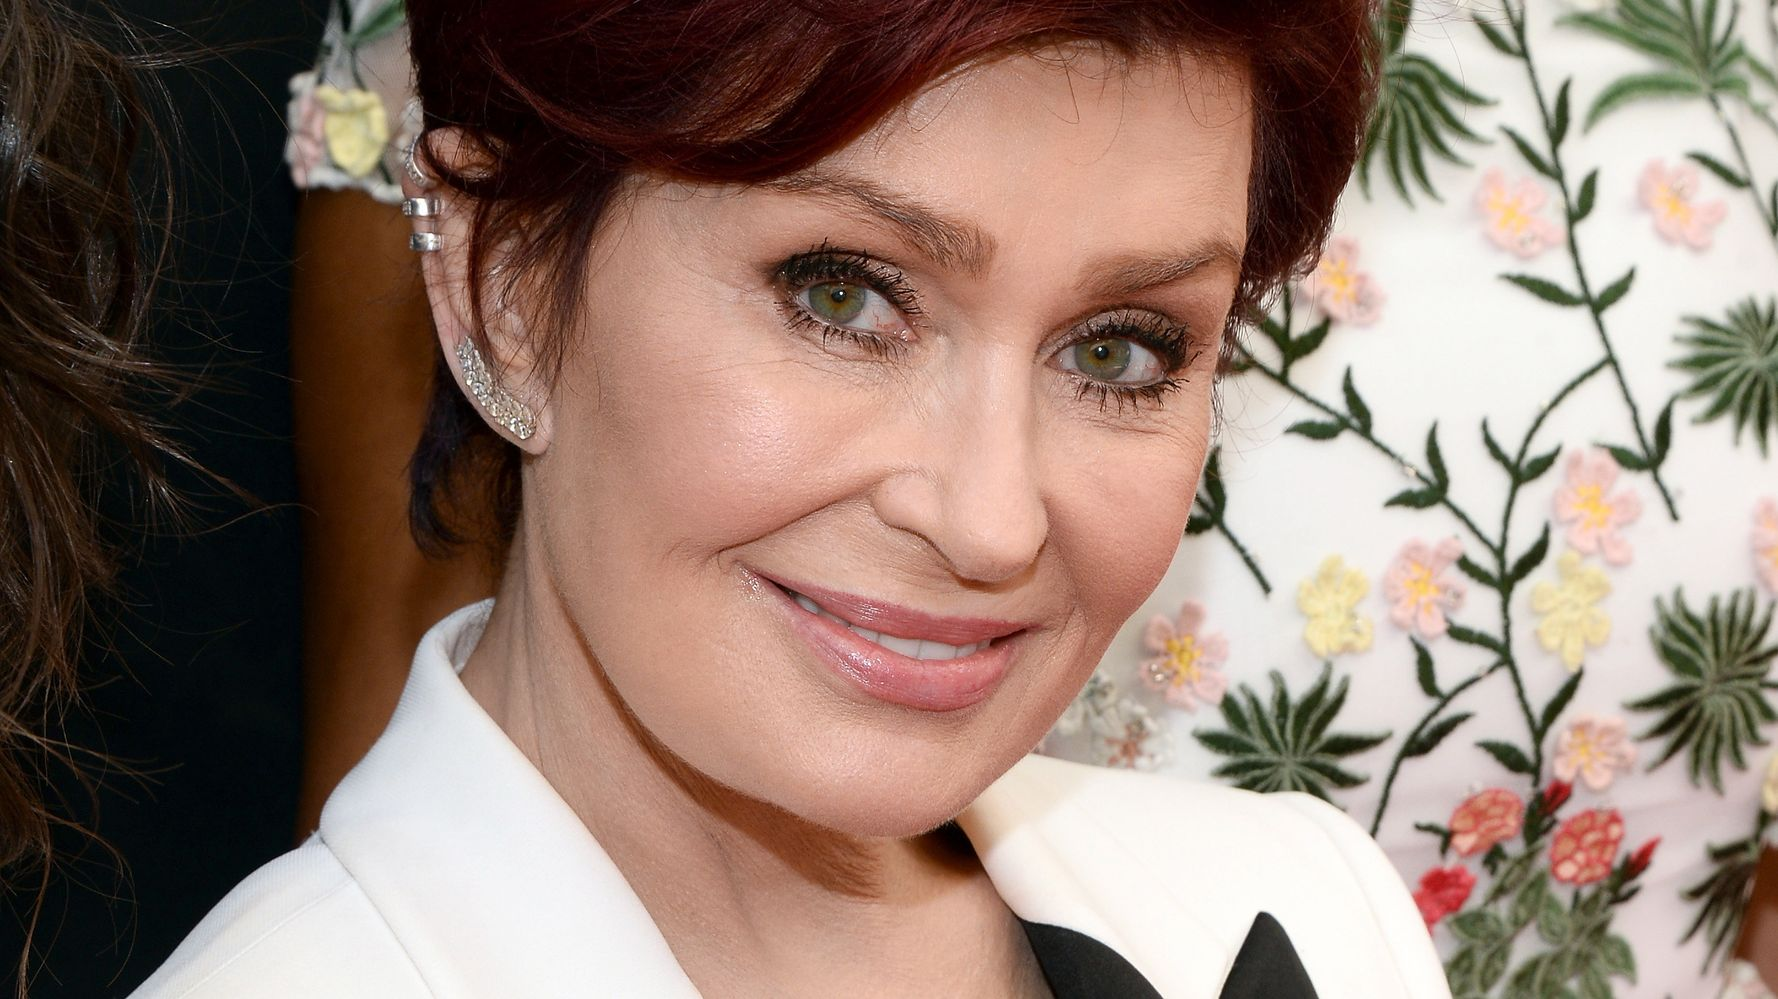 Sharon Osbourne Opens Up About Sexuality After Stories Claim She's Bisexual